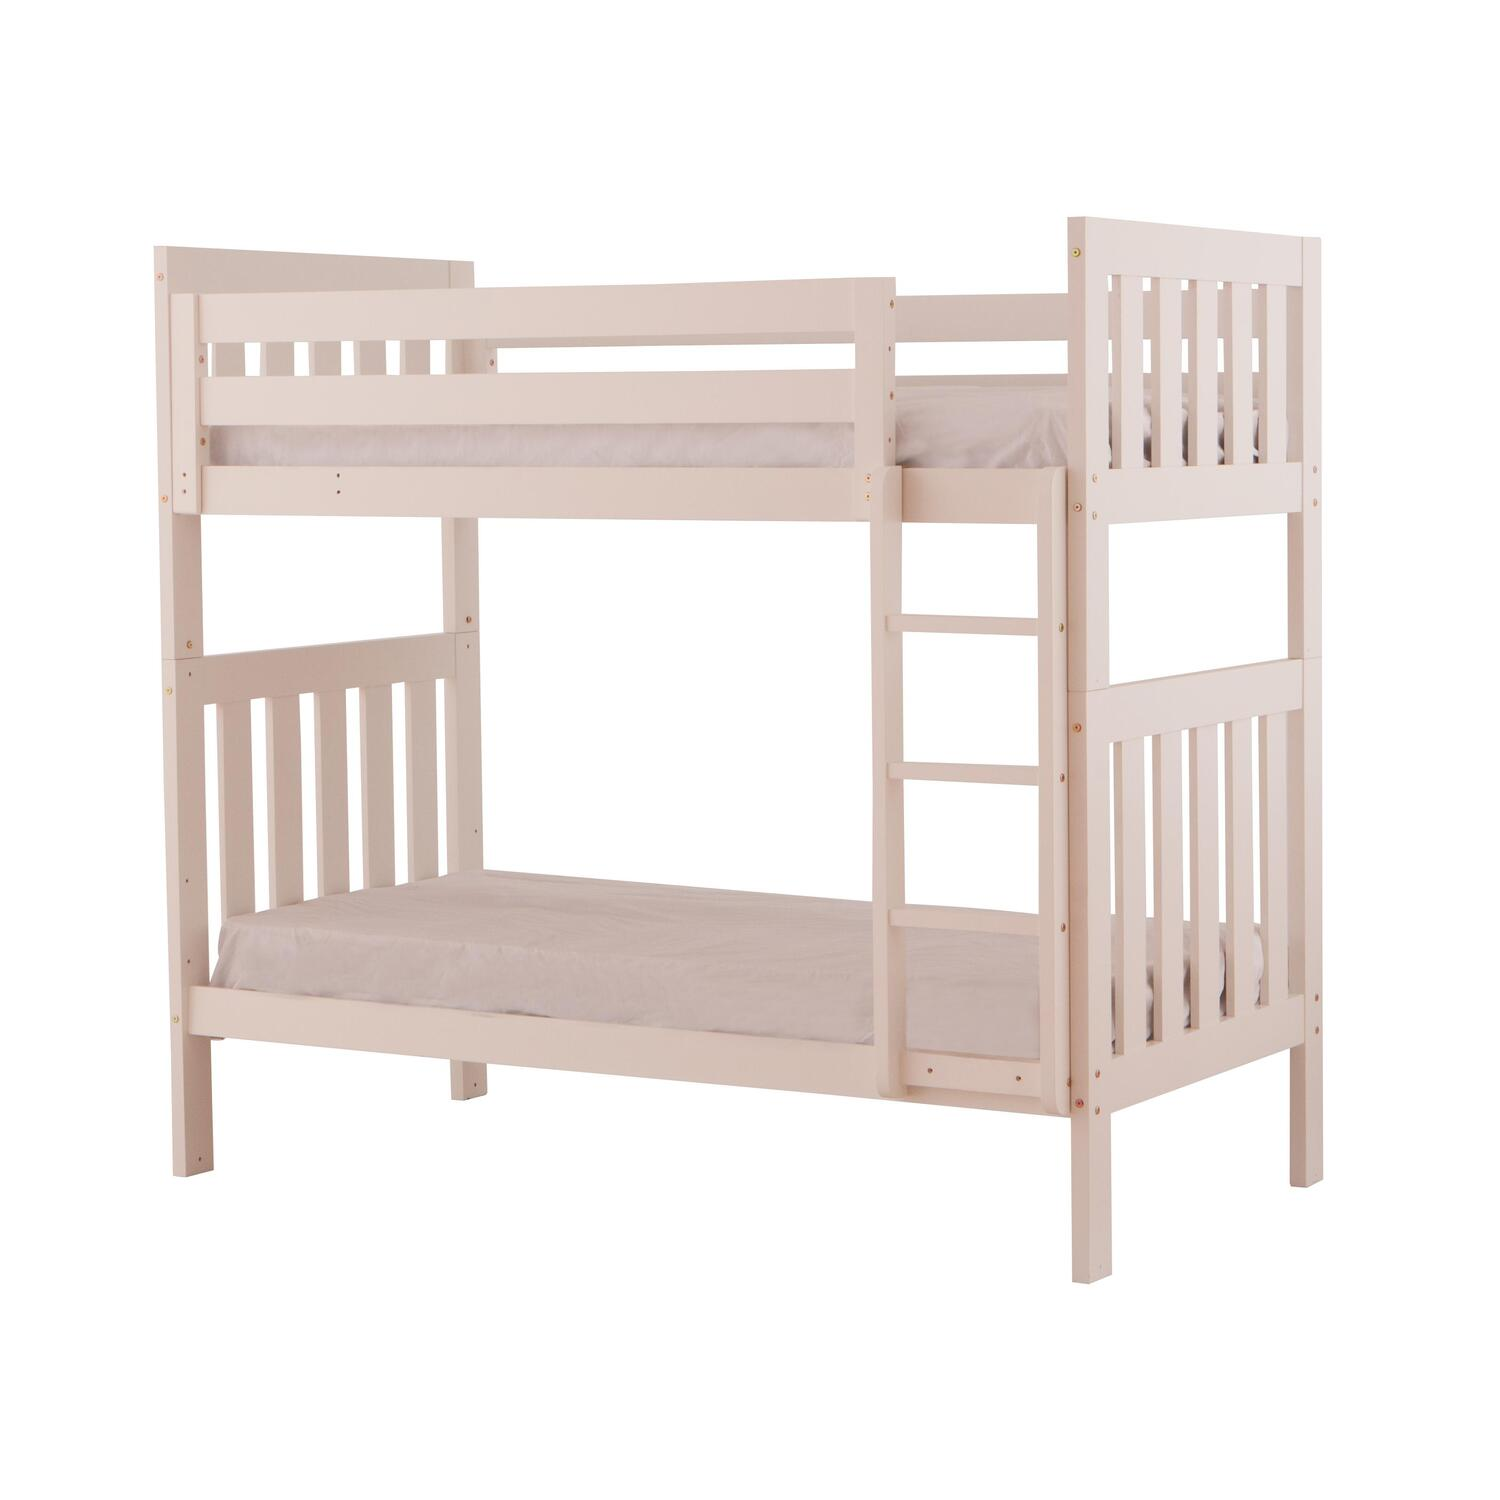 Canwood bunk beds canwood whistler junior loft bunk bed in espresso 2131 9 canwood whistler - Canwood whistler ...